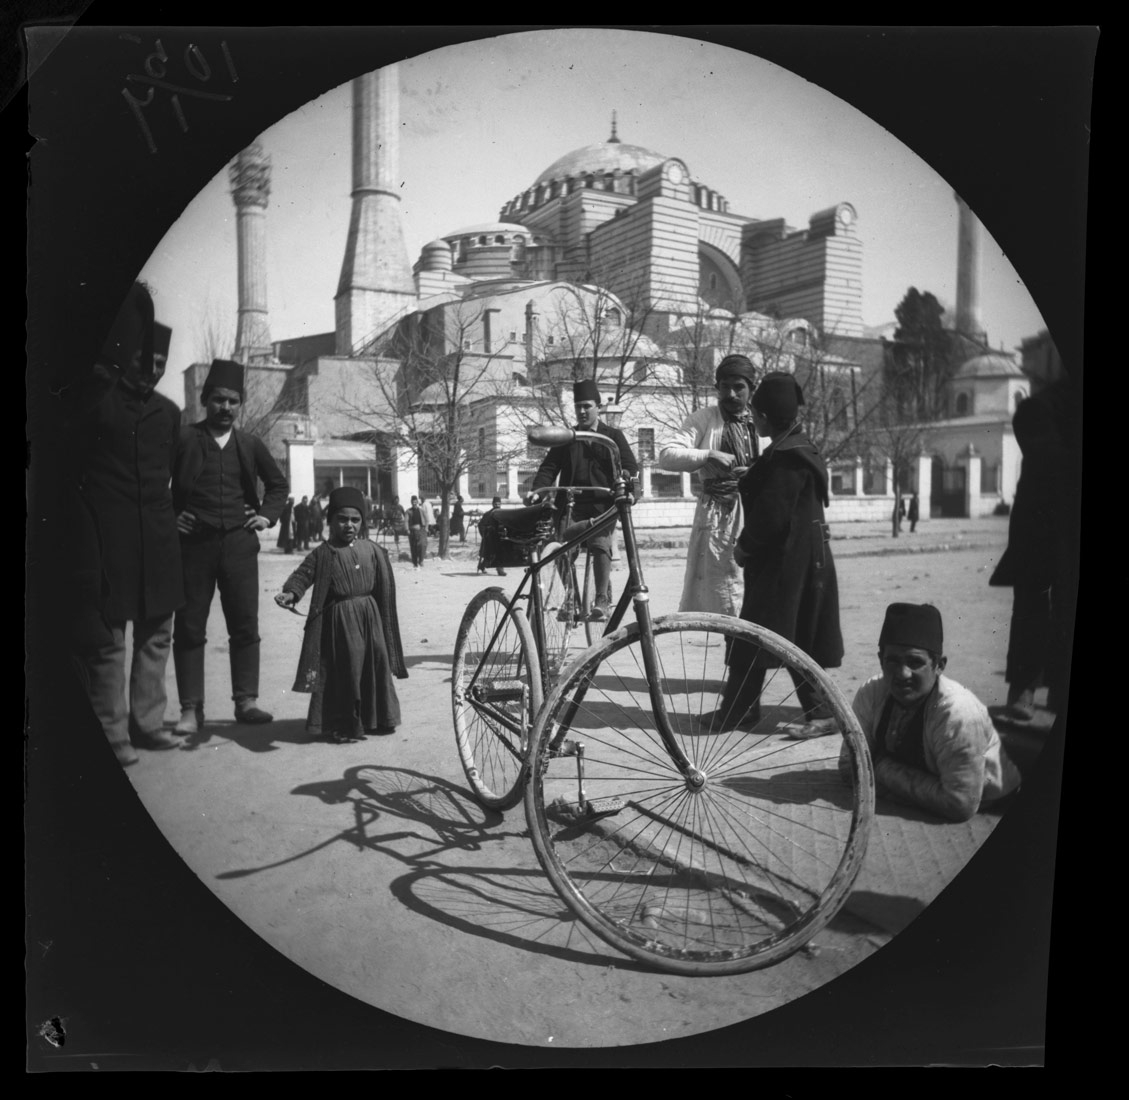 William Sachtleben's Humber bicycle at rest in Constantinople draws a crowd of spectators.  Background: Hagia Sophia and Thomas Allen on his bicycle.  March 21, 1891. Collection of the UCLA Library Special Collections